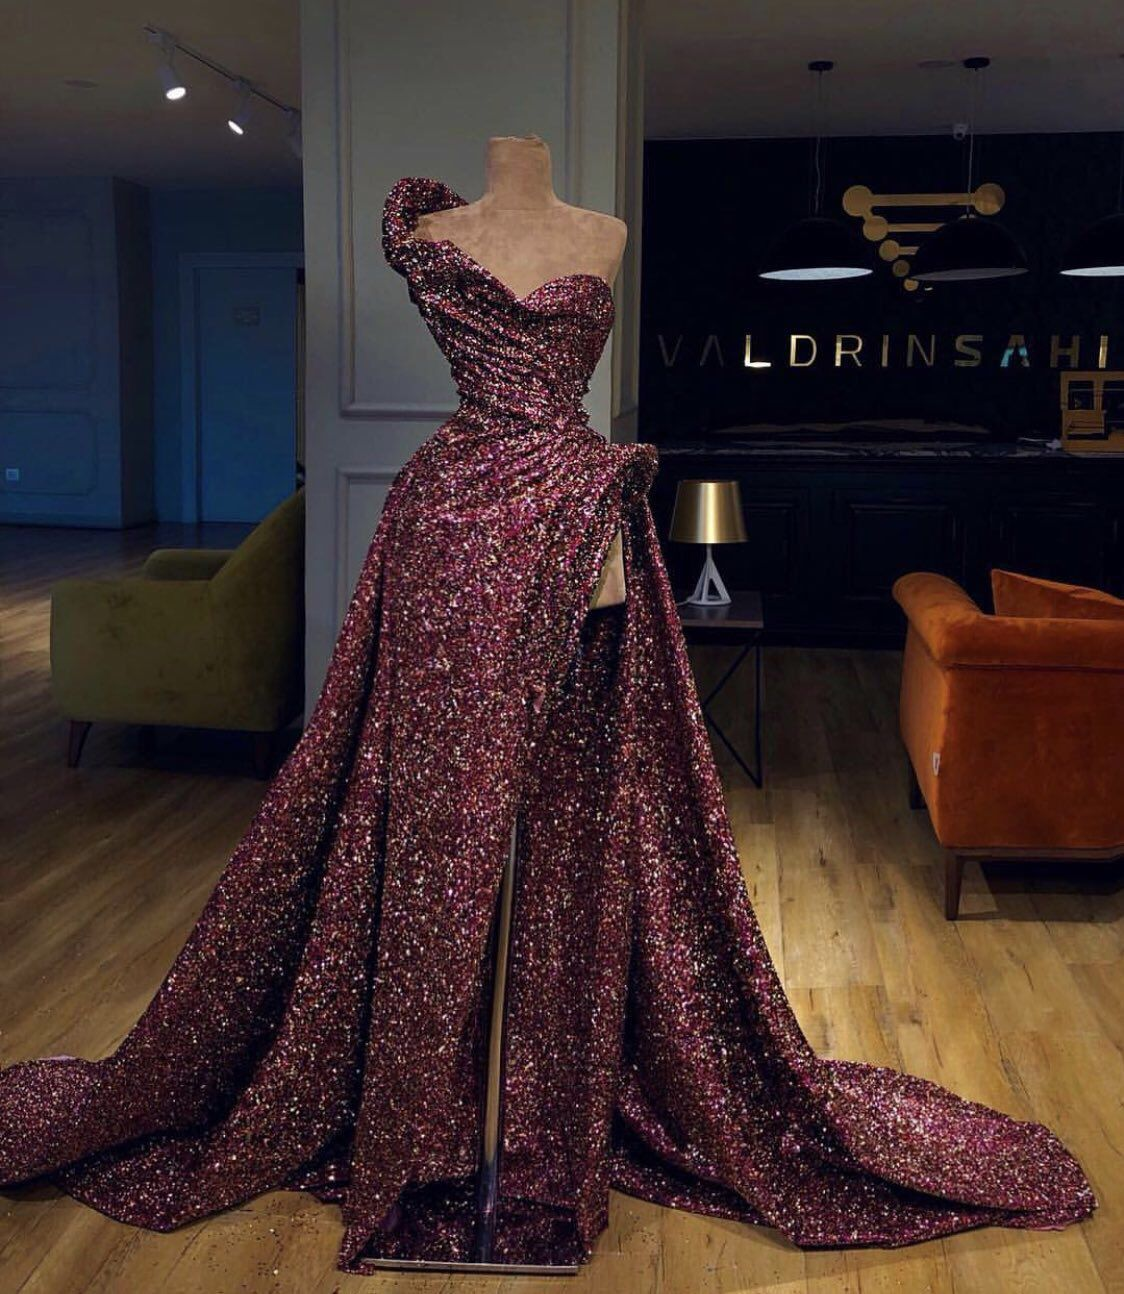 Valdrin sahiti o o t d in pinterest dresses fashion and